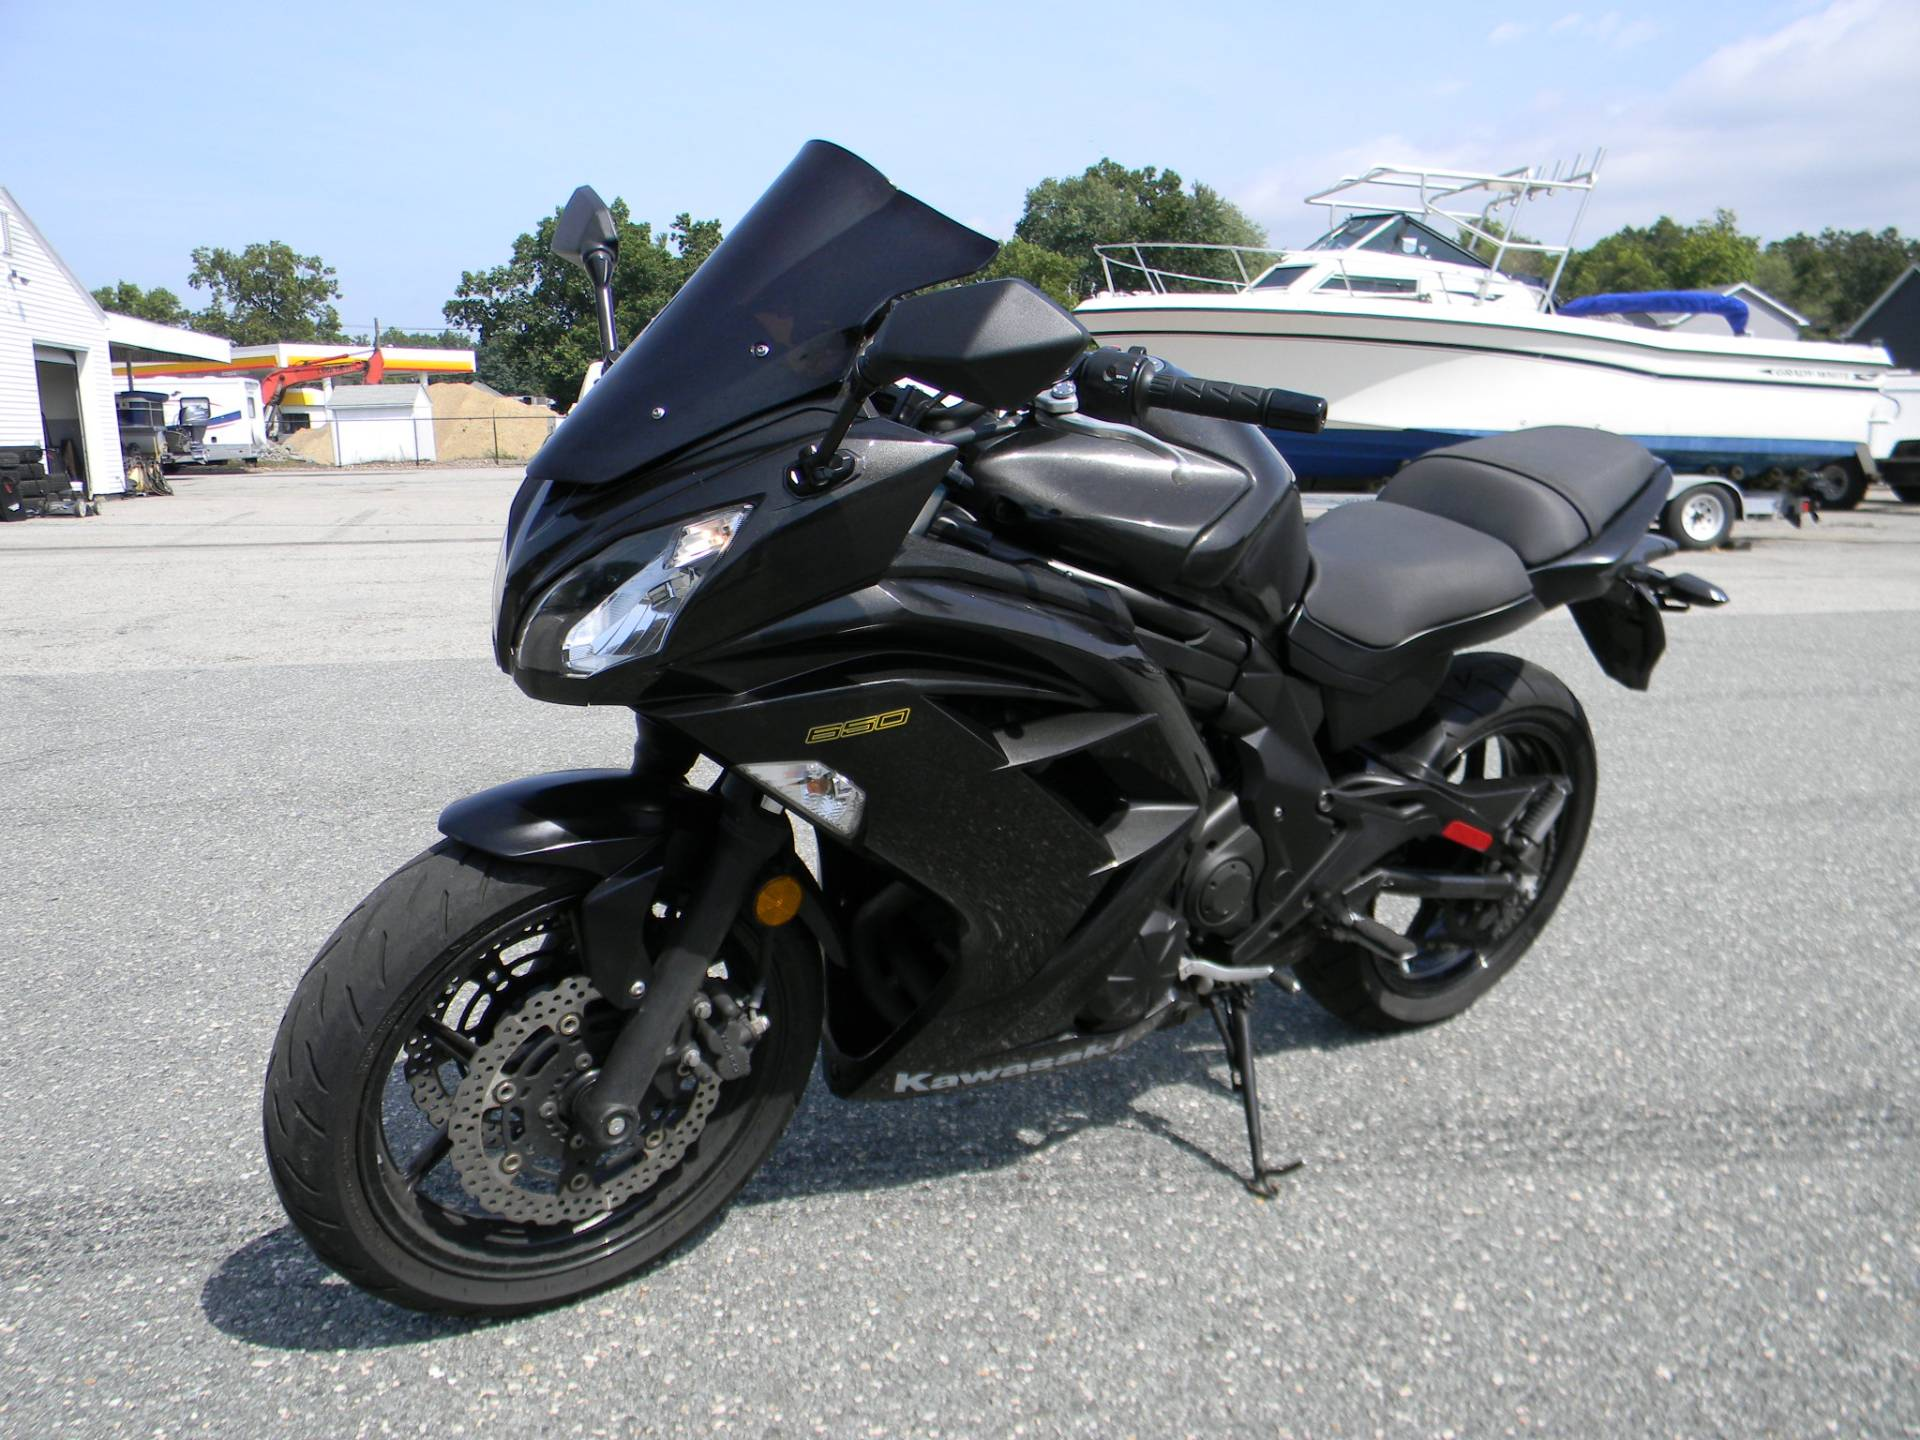 2013 Kawasaki Ninja® 650 in Springfield, Massachusetts - Photo 5